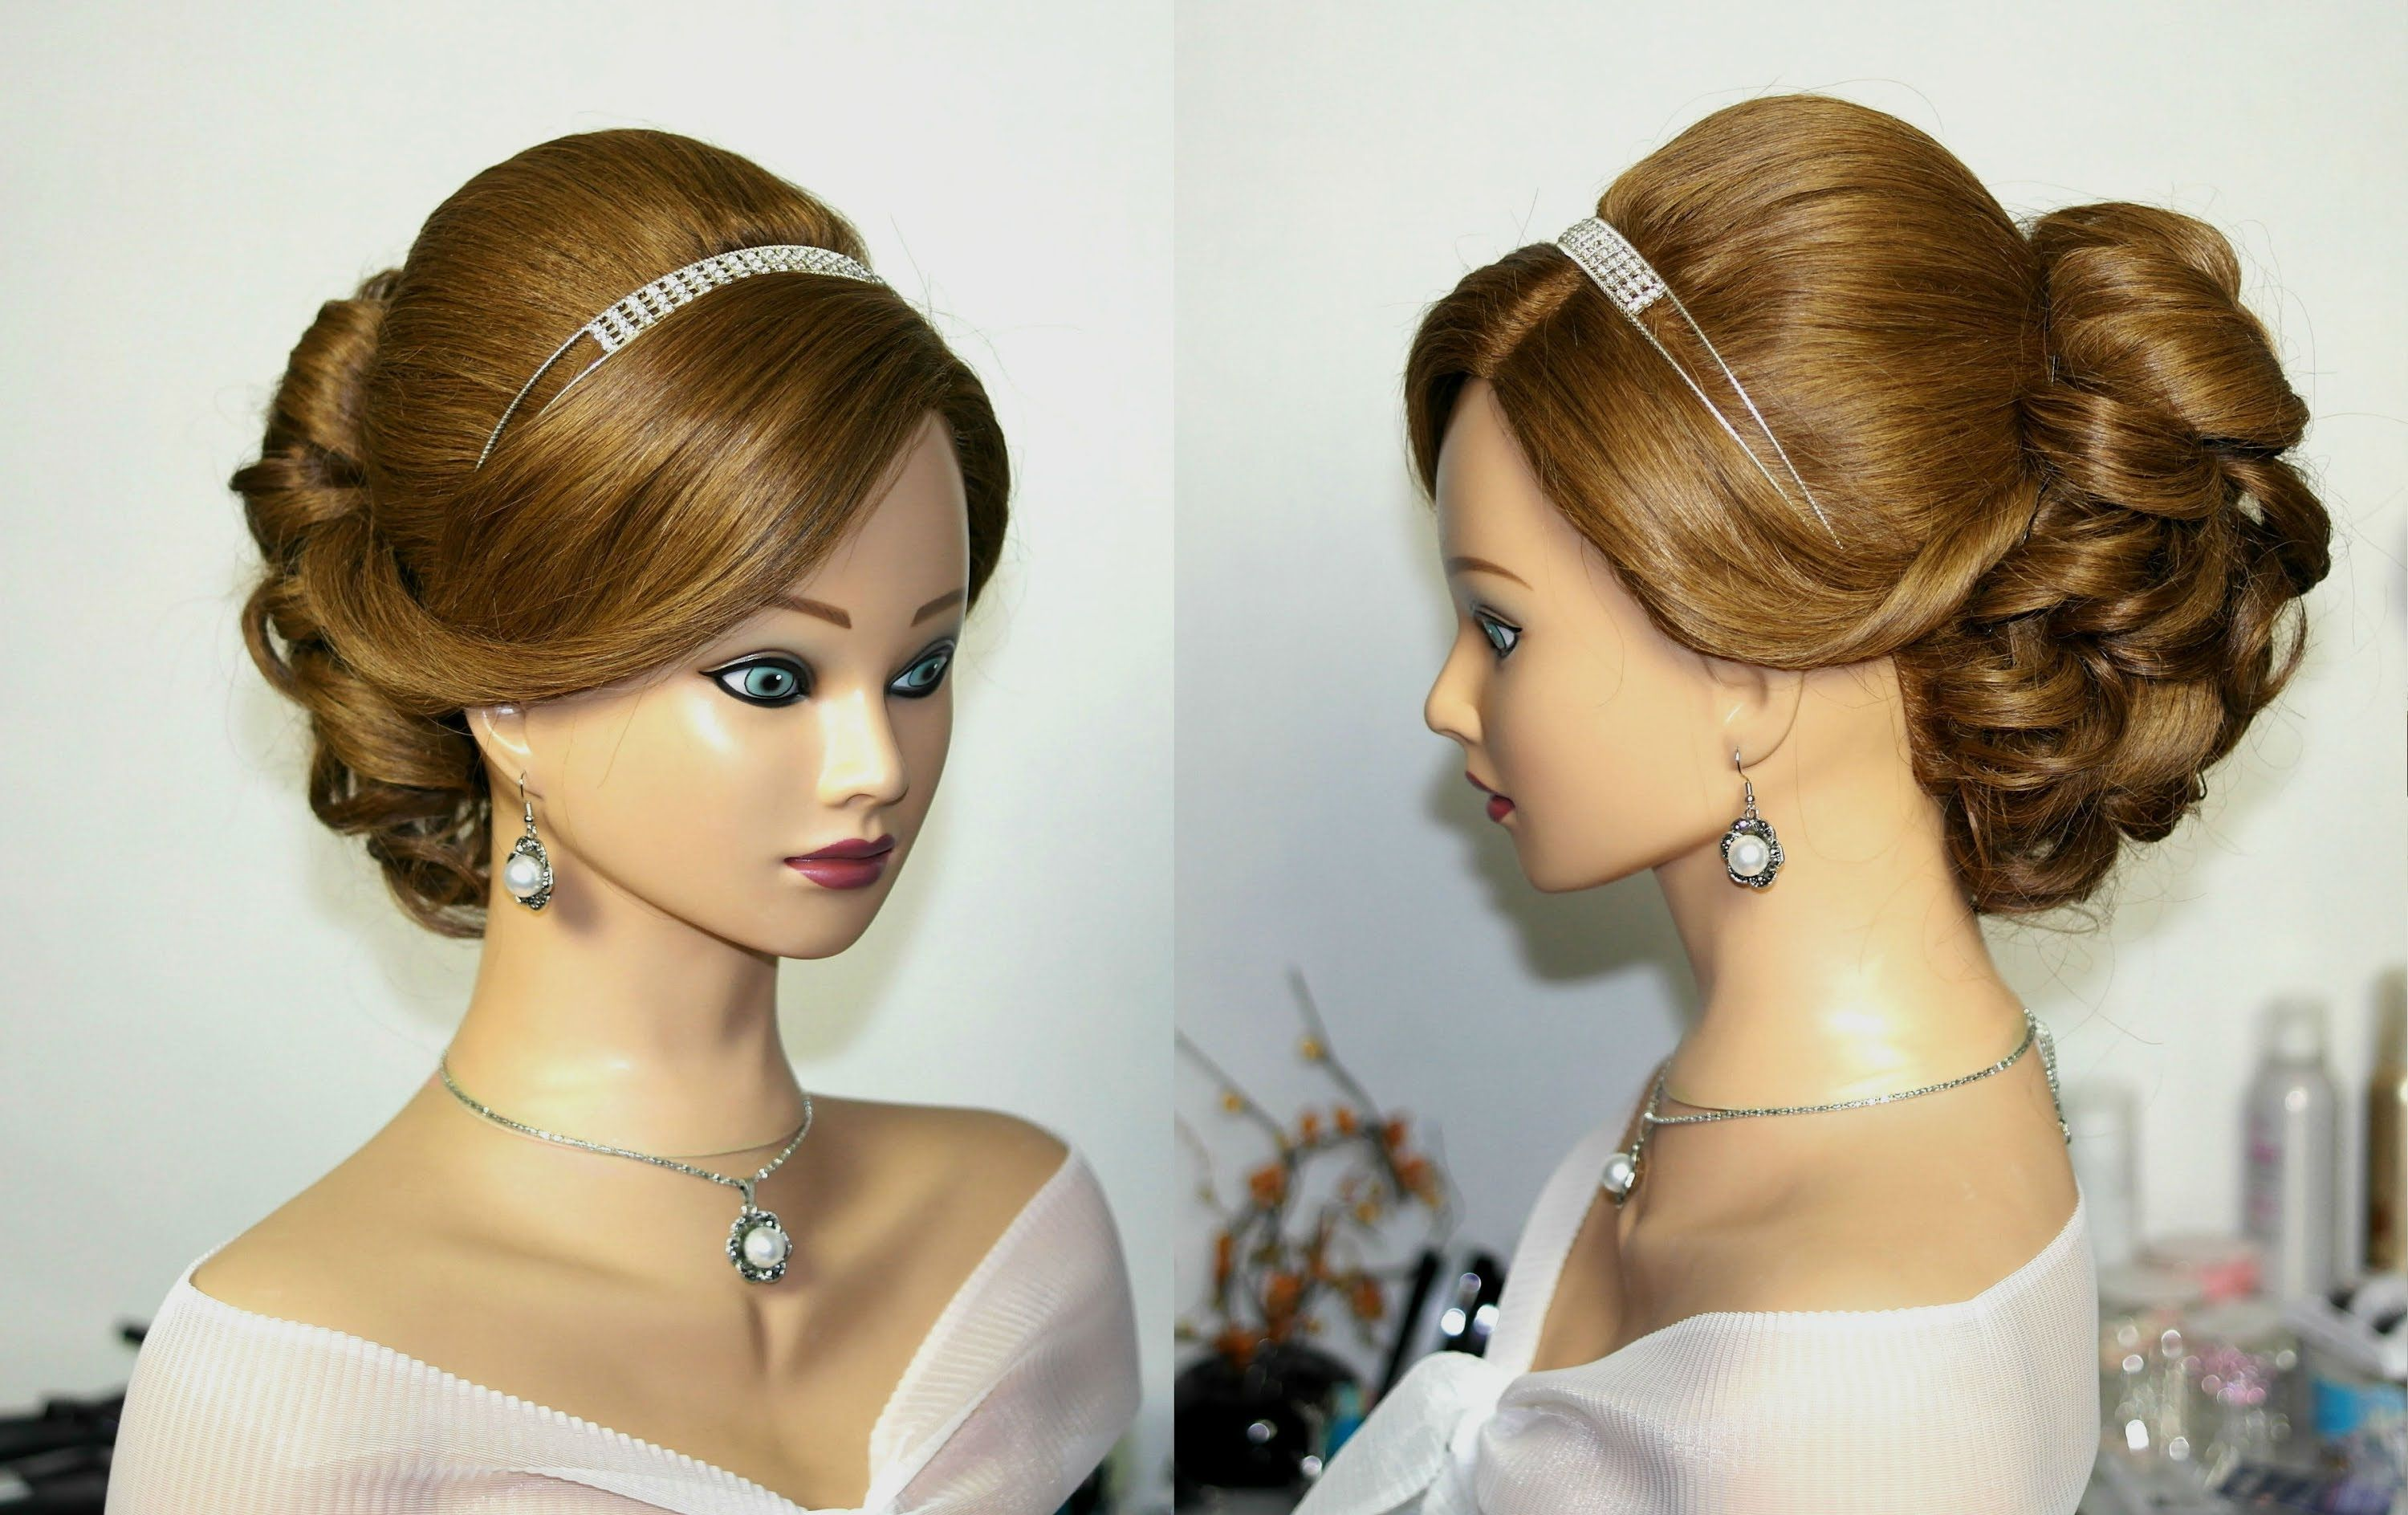 Beauty Tips Bridal And Wedding Hairstyles For Long Or: Wedding Prom Hairstyles For Long Hair. Свадебная прическа